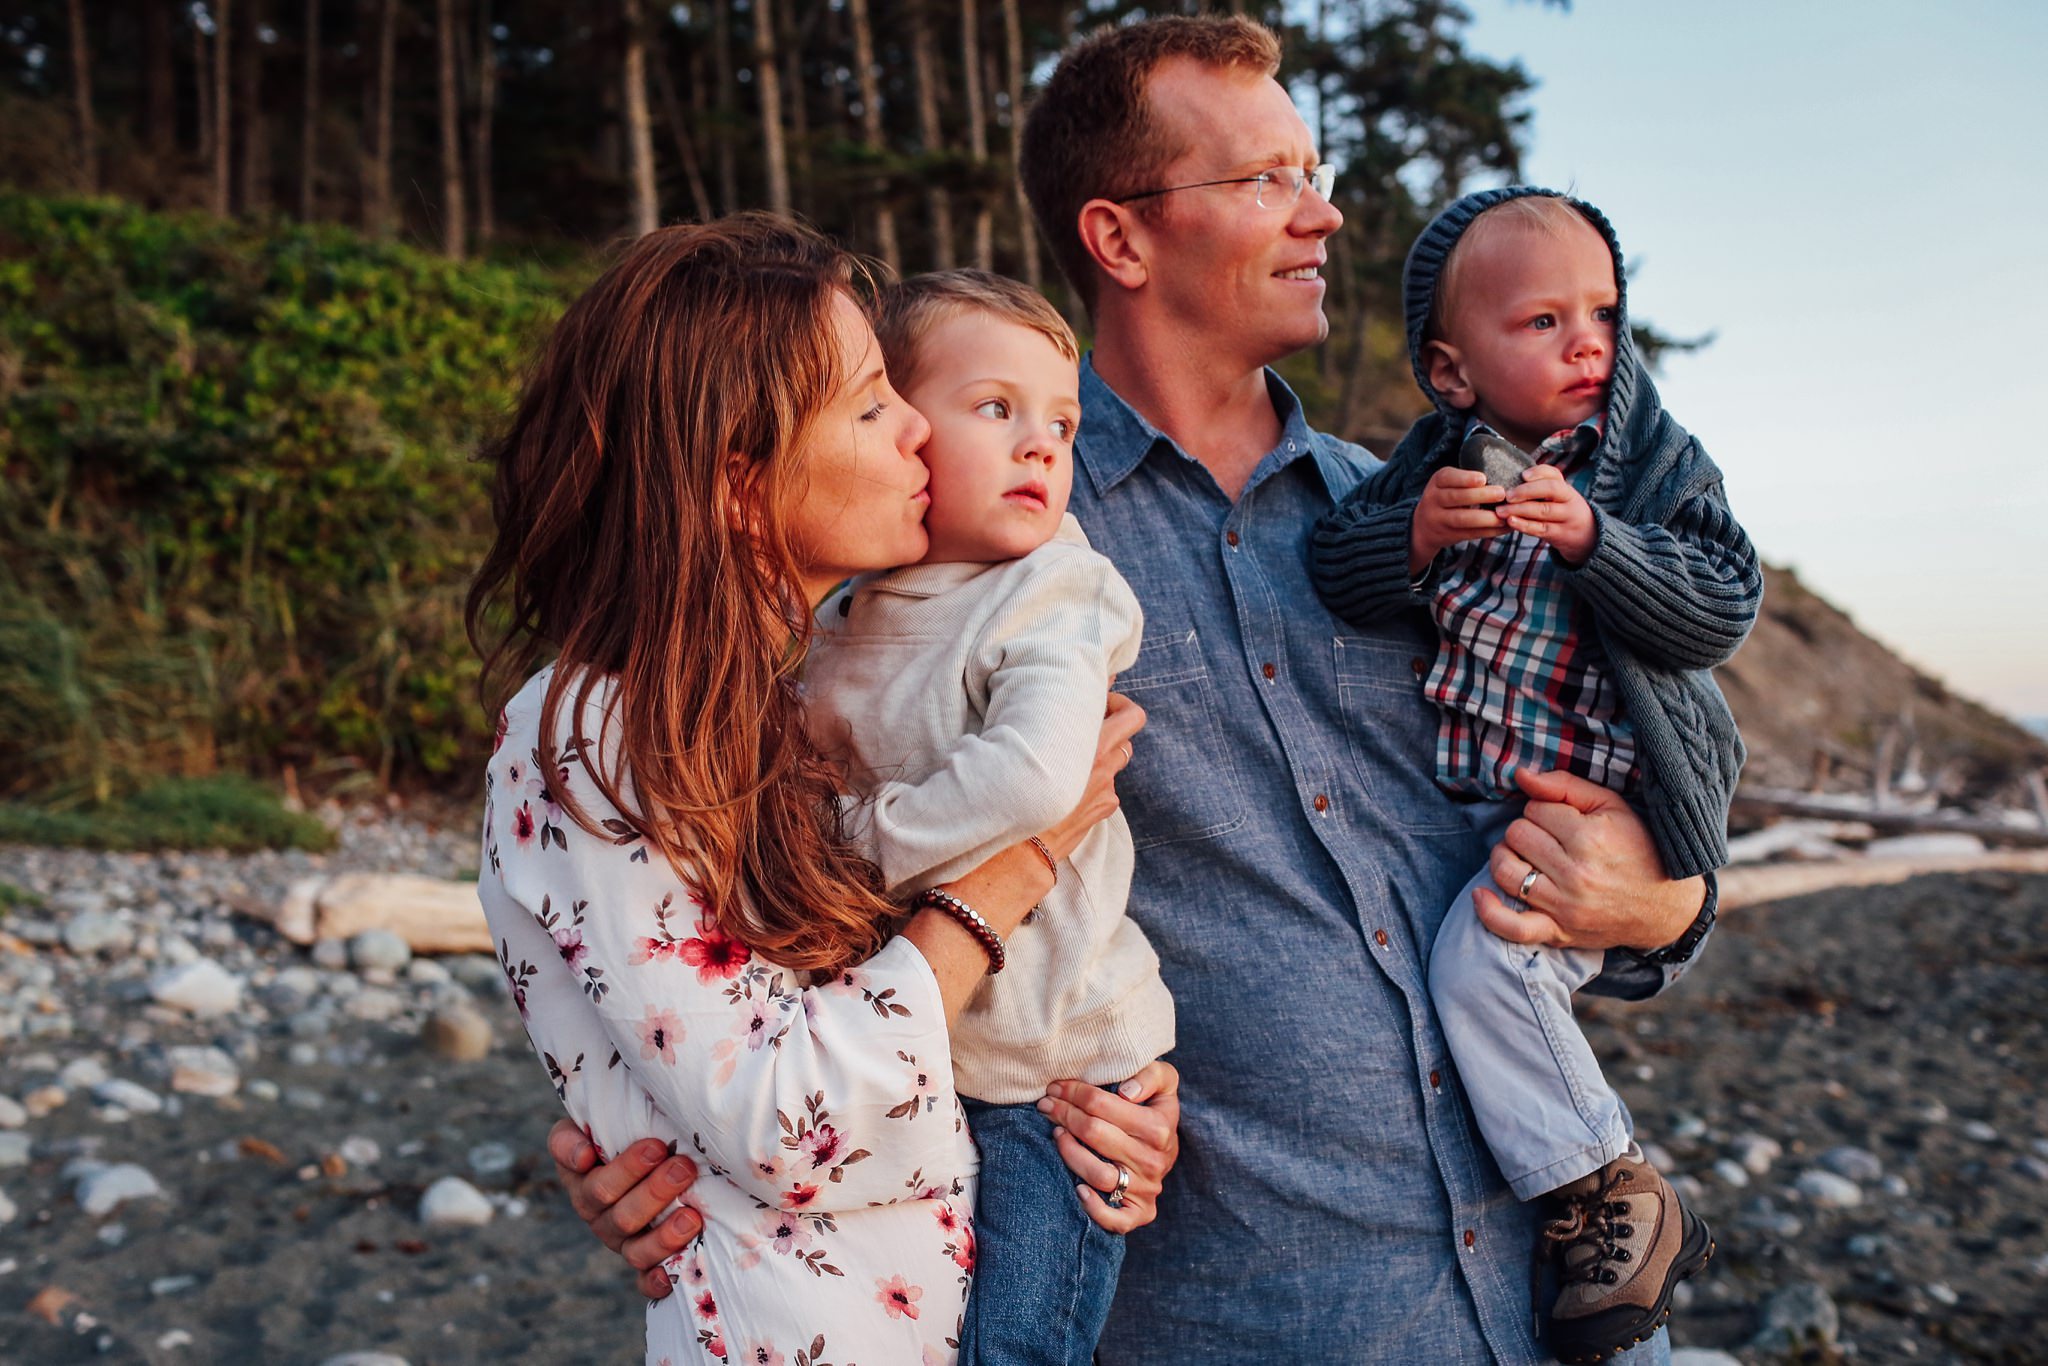 Whidbey-Island-Family-Photographer-Kara-Chappell-Photography_1091.jpg